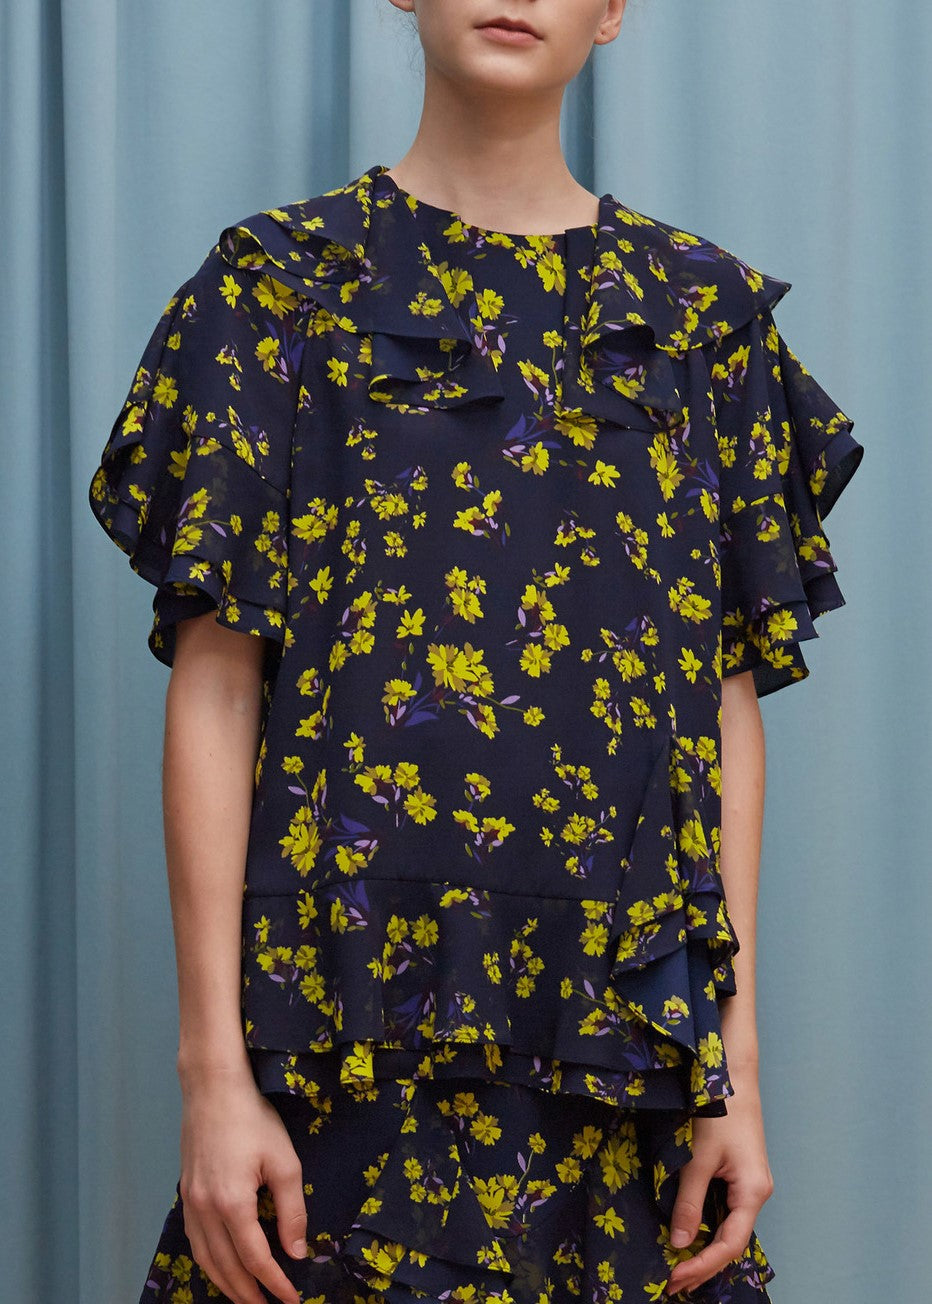 Goen.J floral printed ruffle top in navy